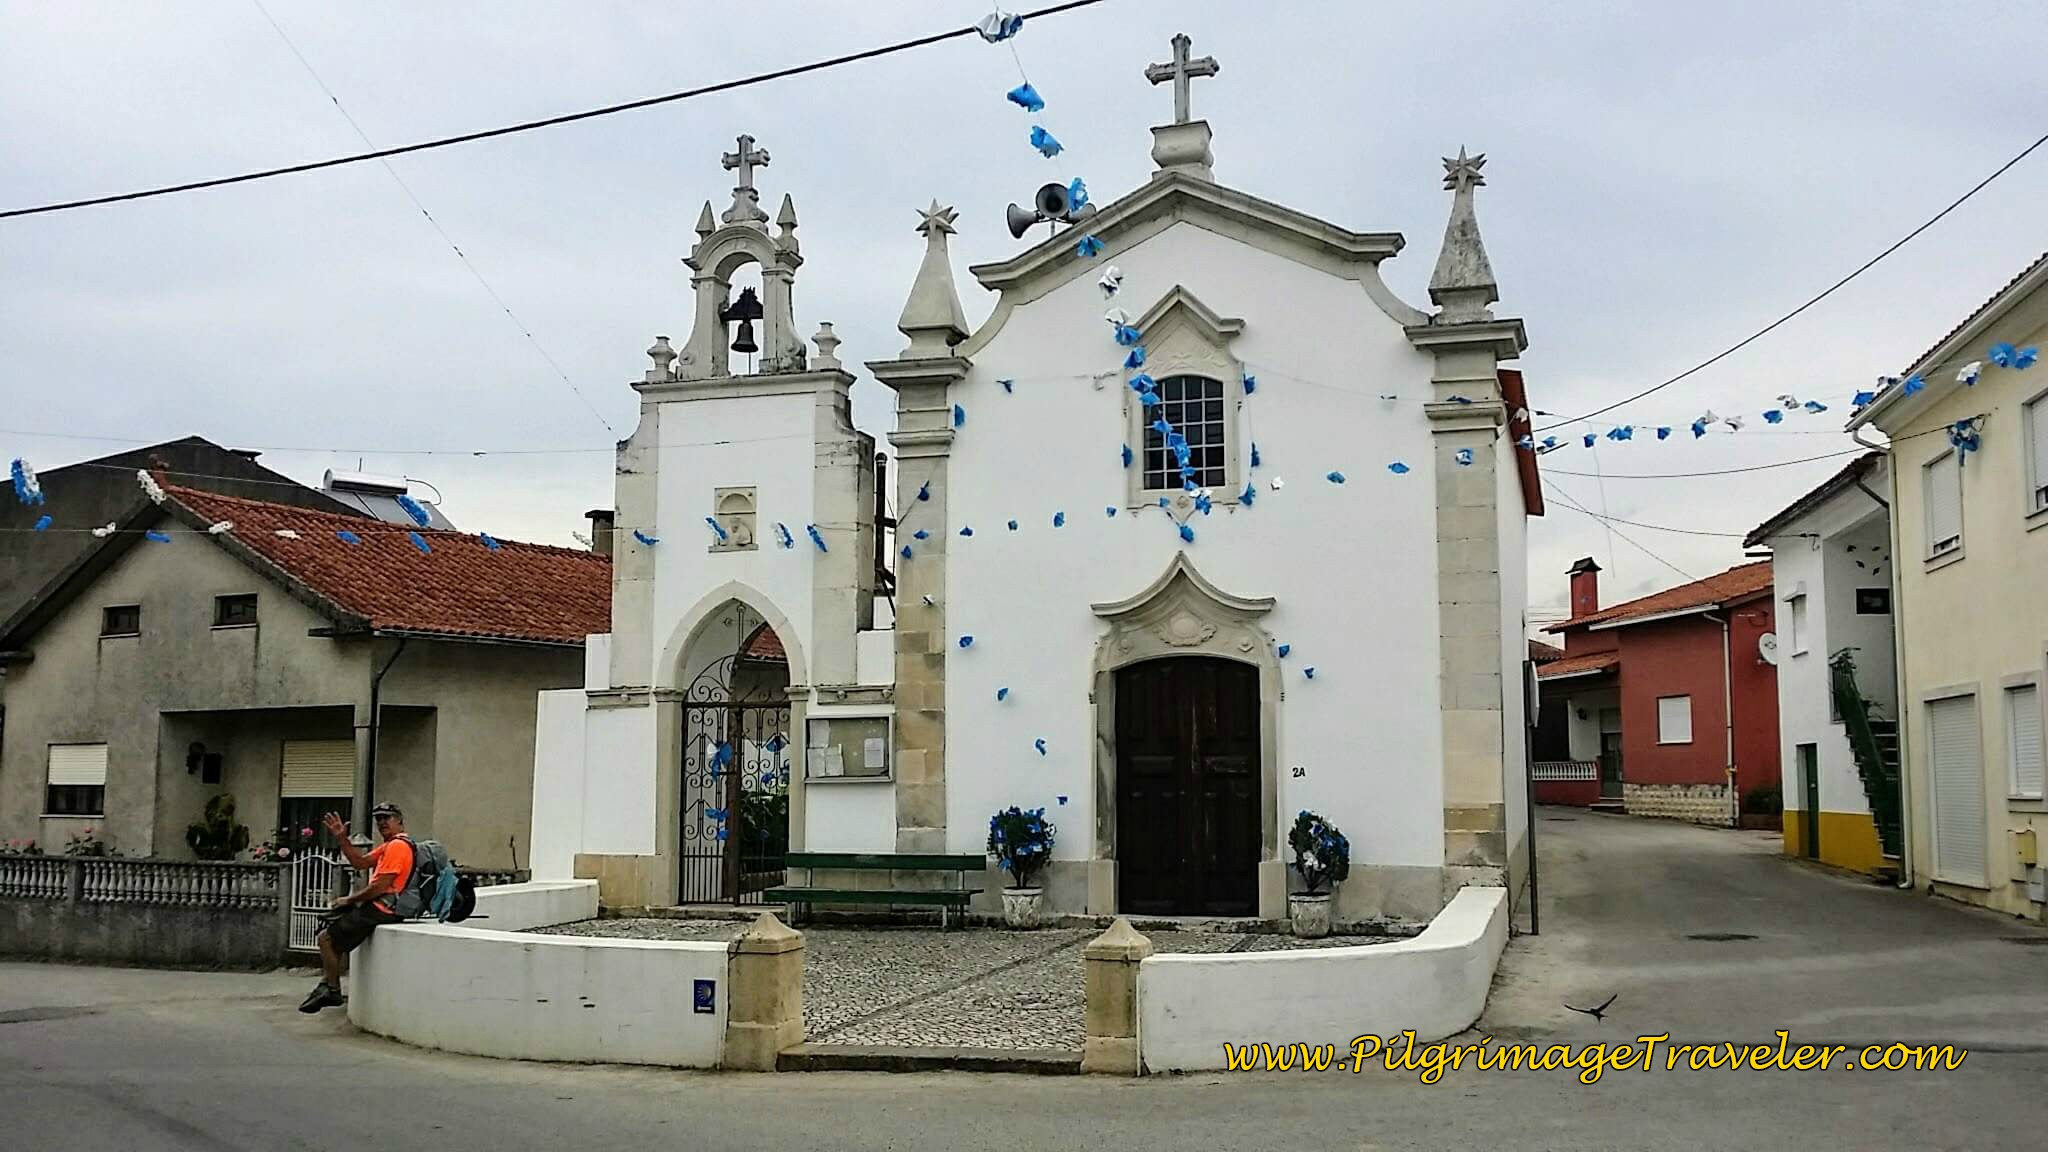 Rich Rests in the Chapel Square in Mala, Portugal on the Camino de Santiago